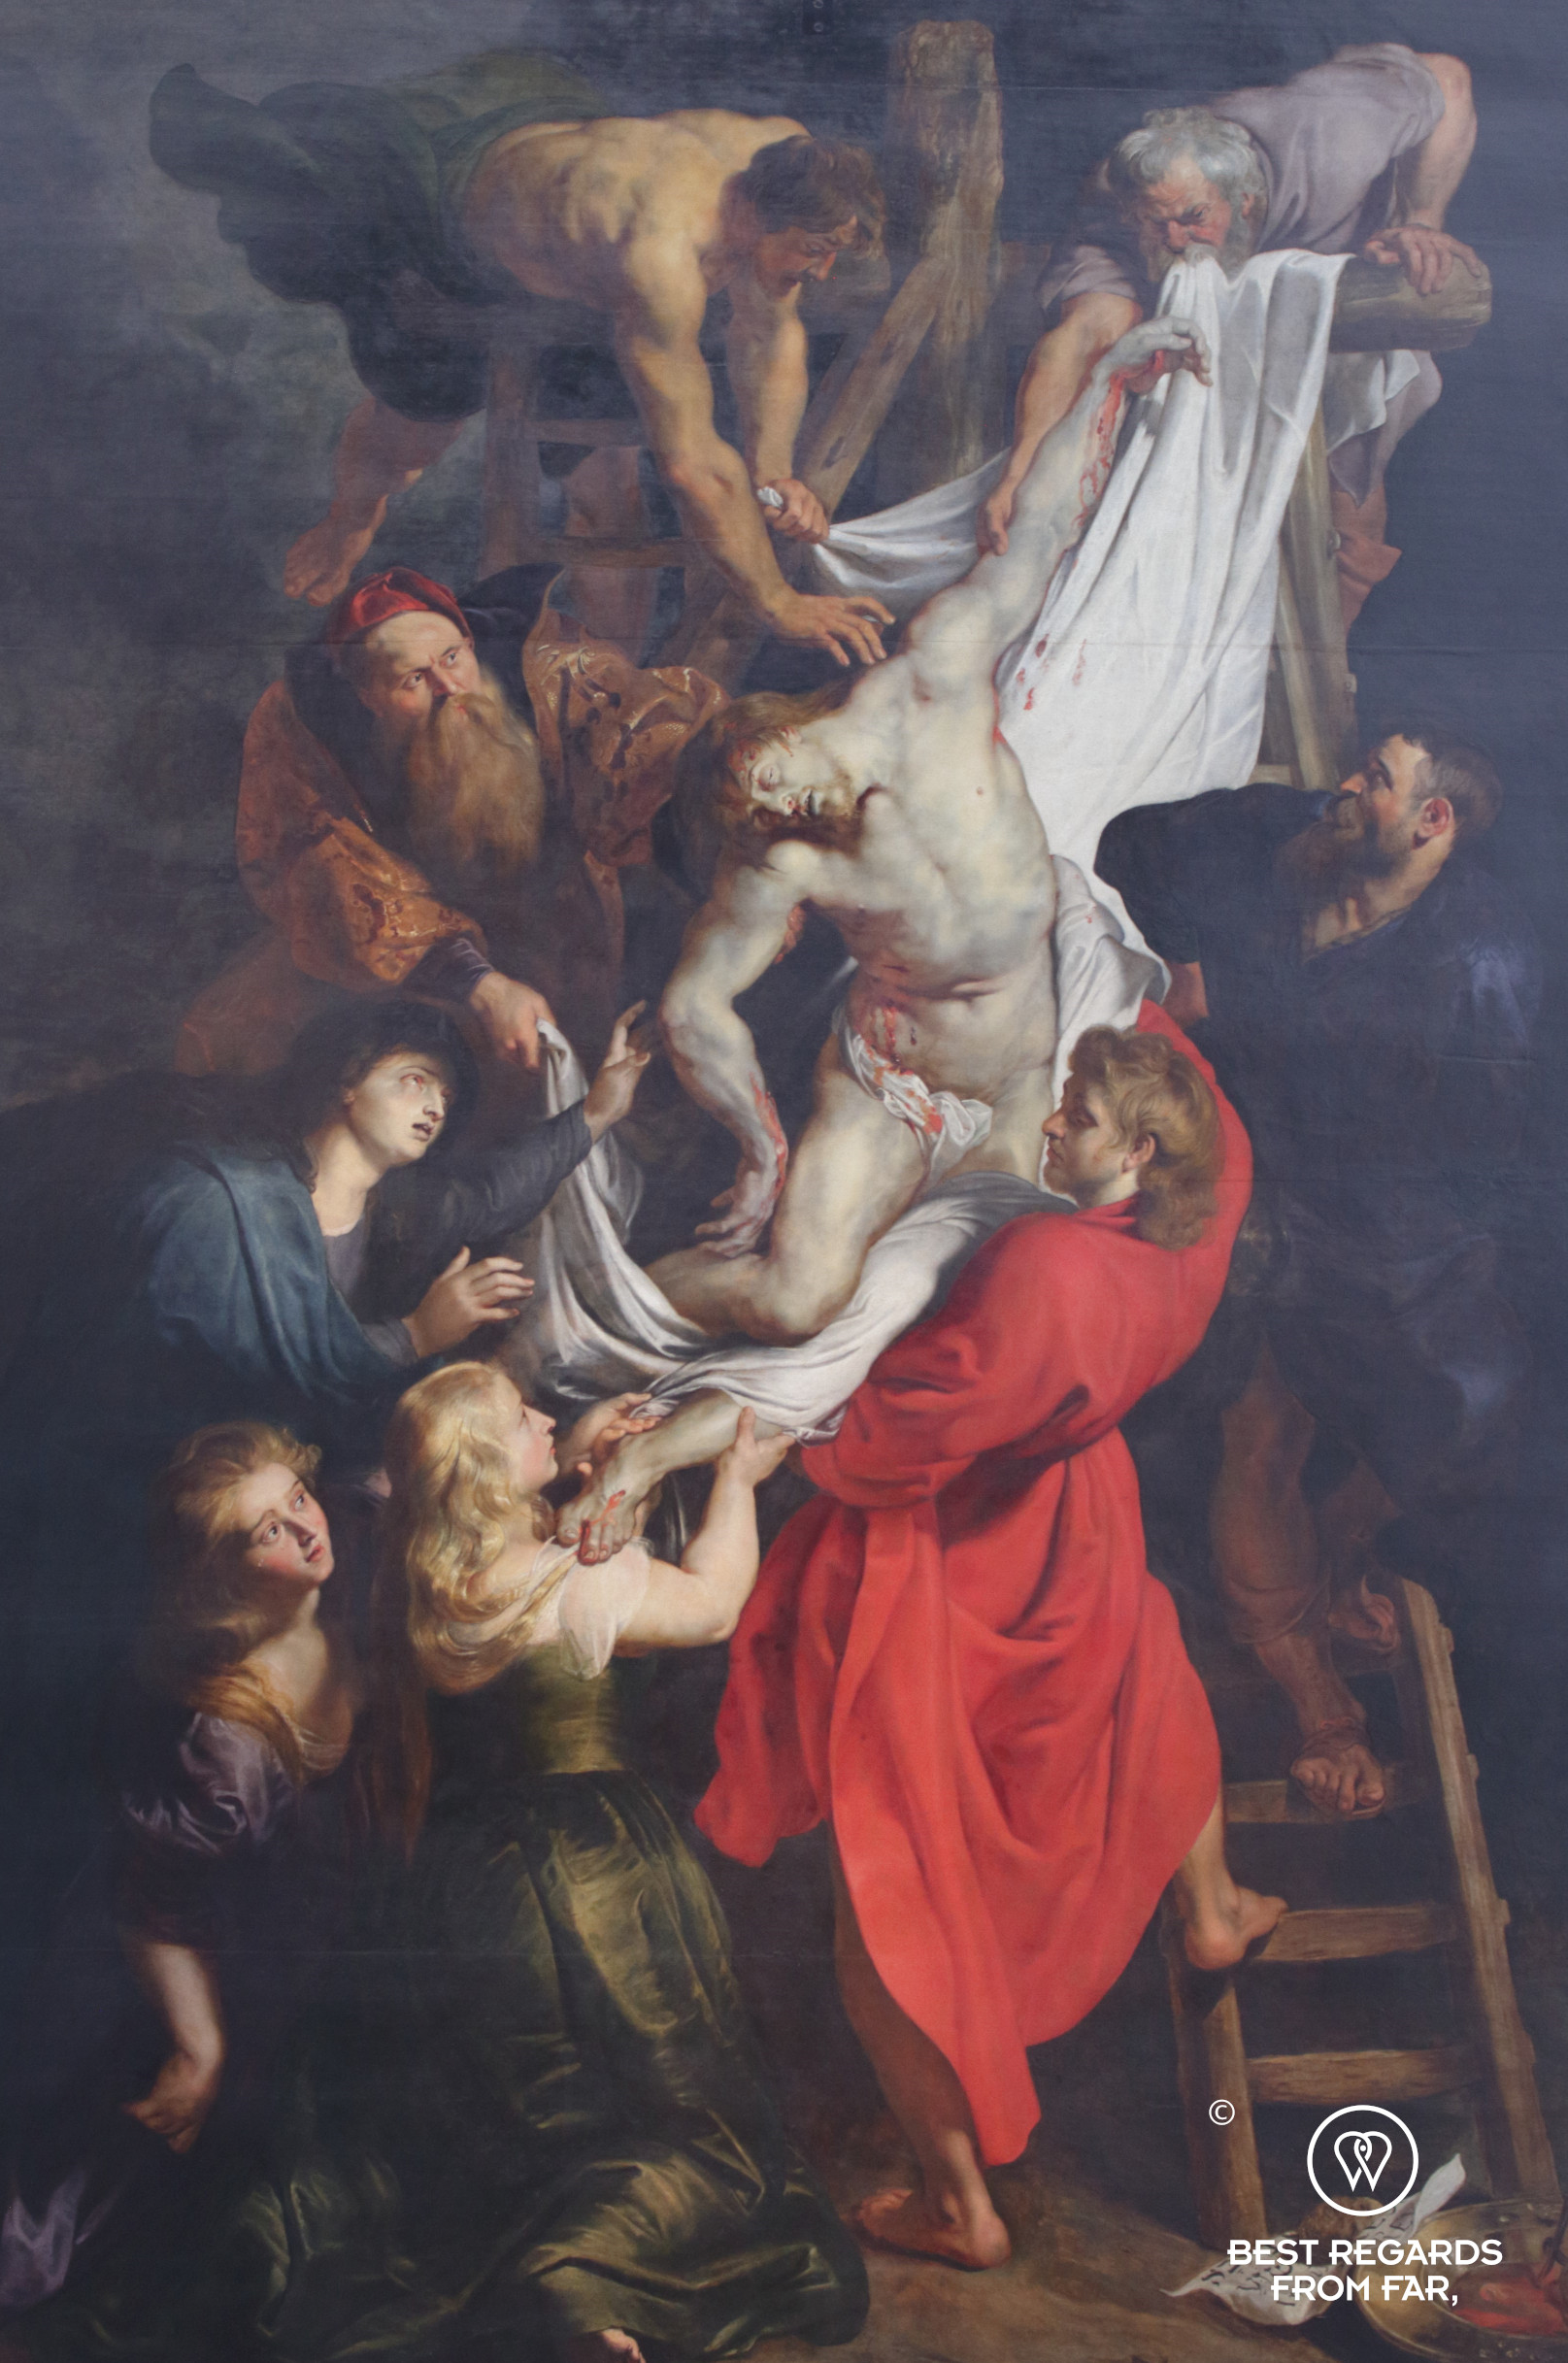 The Descent from the Cross by Rubens, Cathedral of our Lady, Antwerp, Belgium